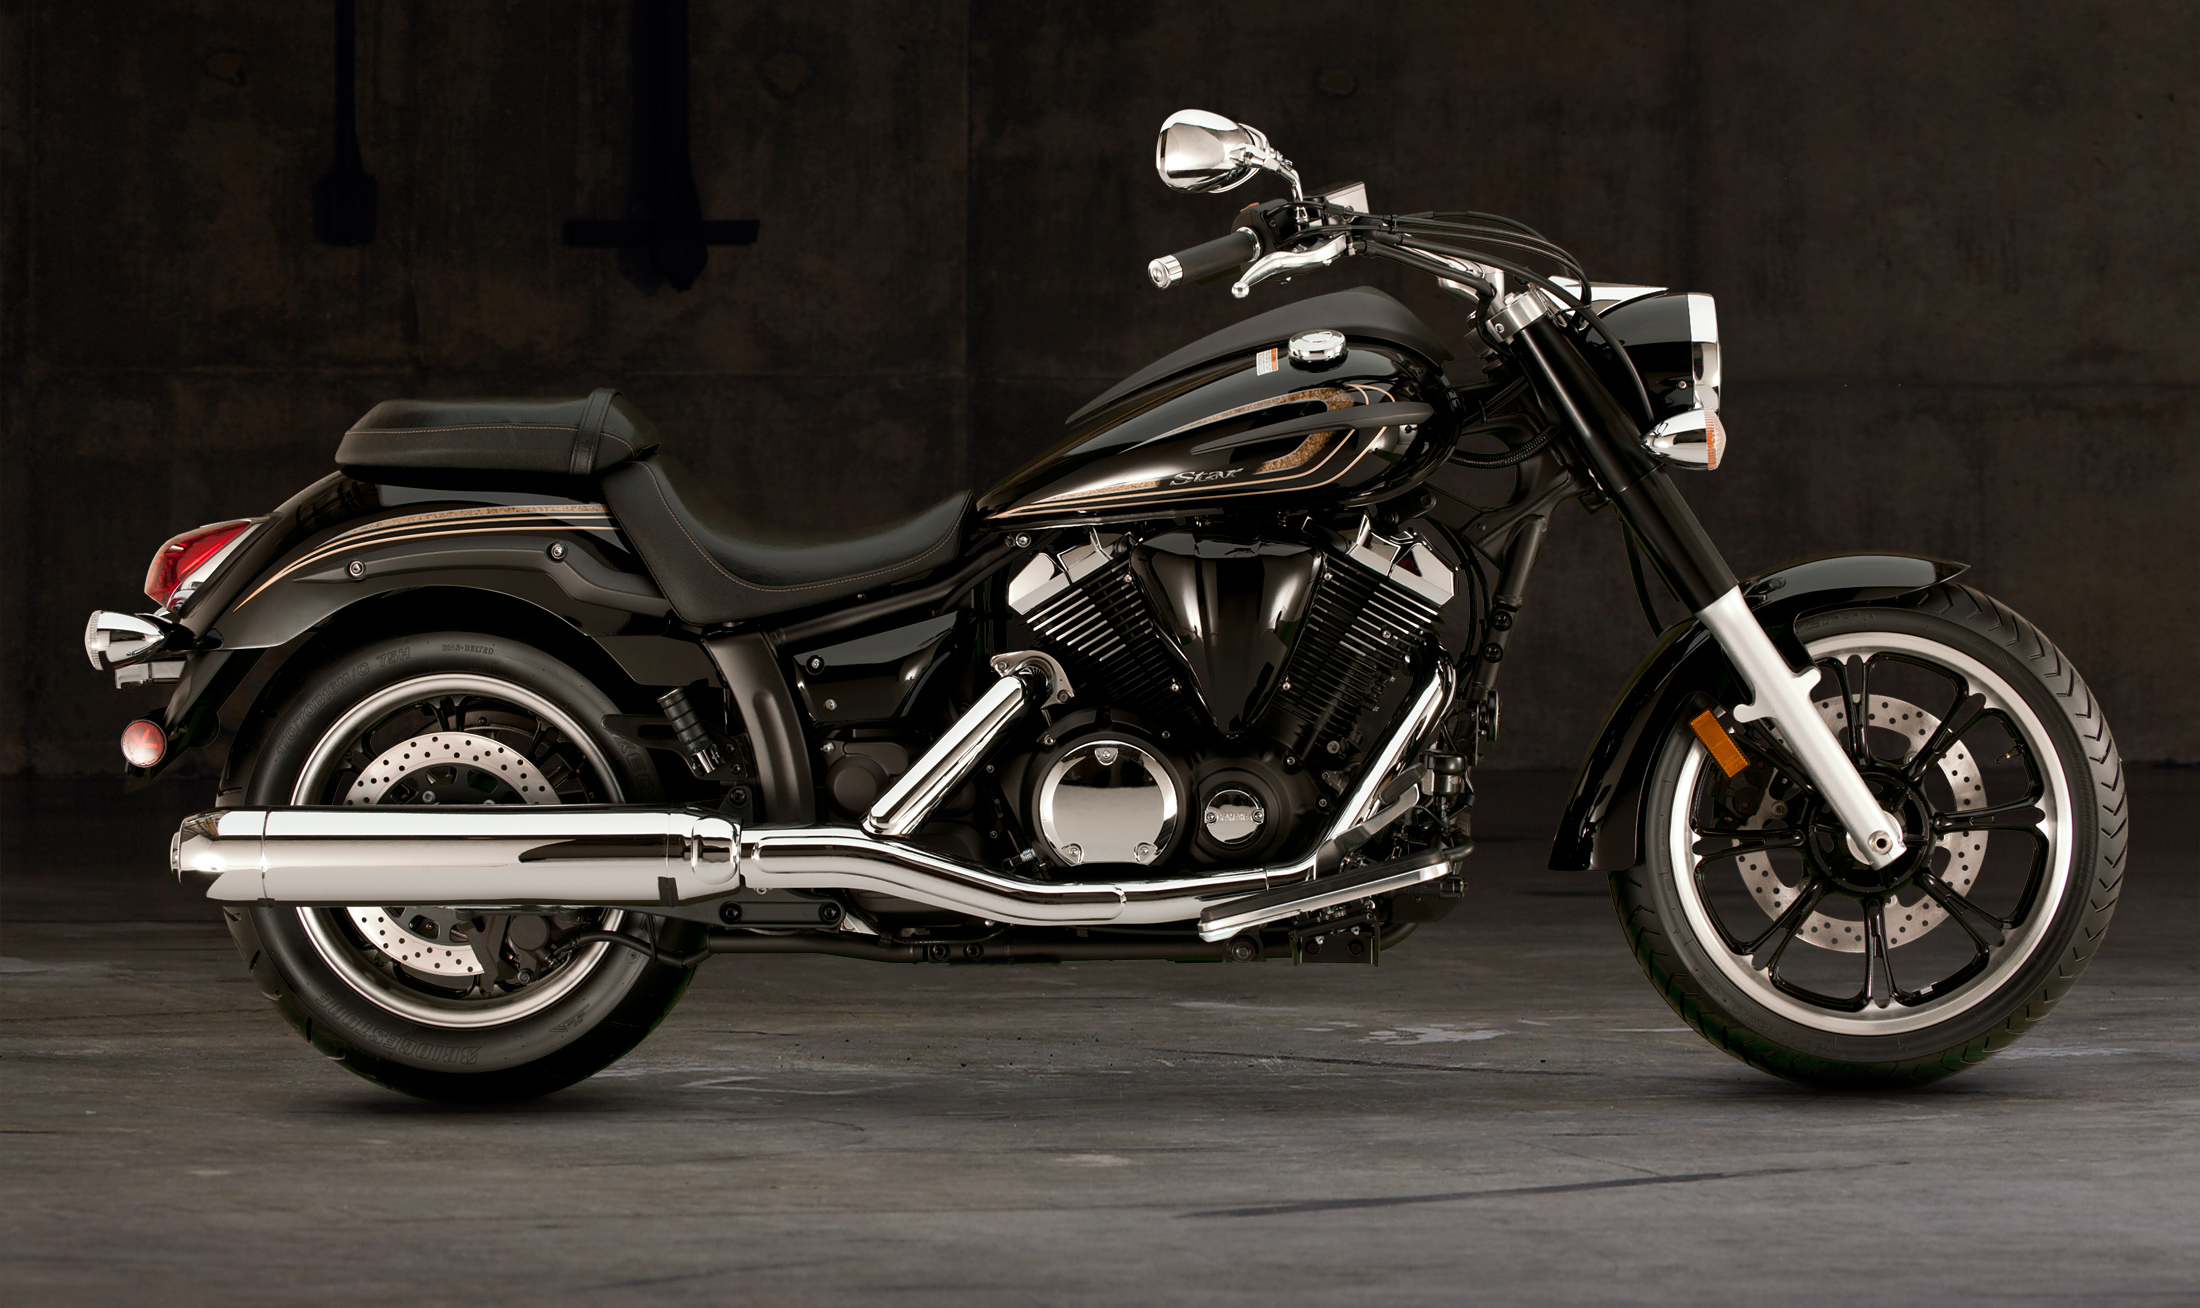 2014 v star 1300 tourer with Yamaha V Star 950 Tourer 2011 on 2013 Cruze station wagon additionally Watch in addition The 2014 Harley Davidson Softail Deluxe Revealed Photo Gallery 65942 likewise Watch also 2012 Tiguan.